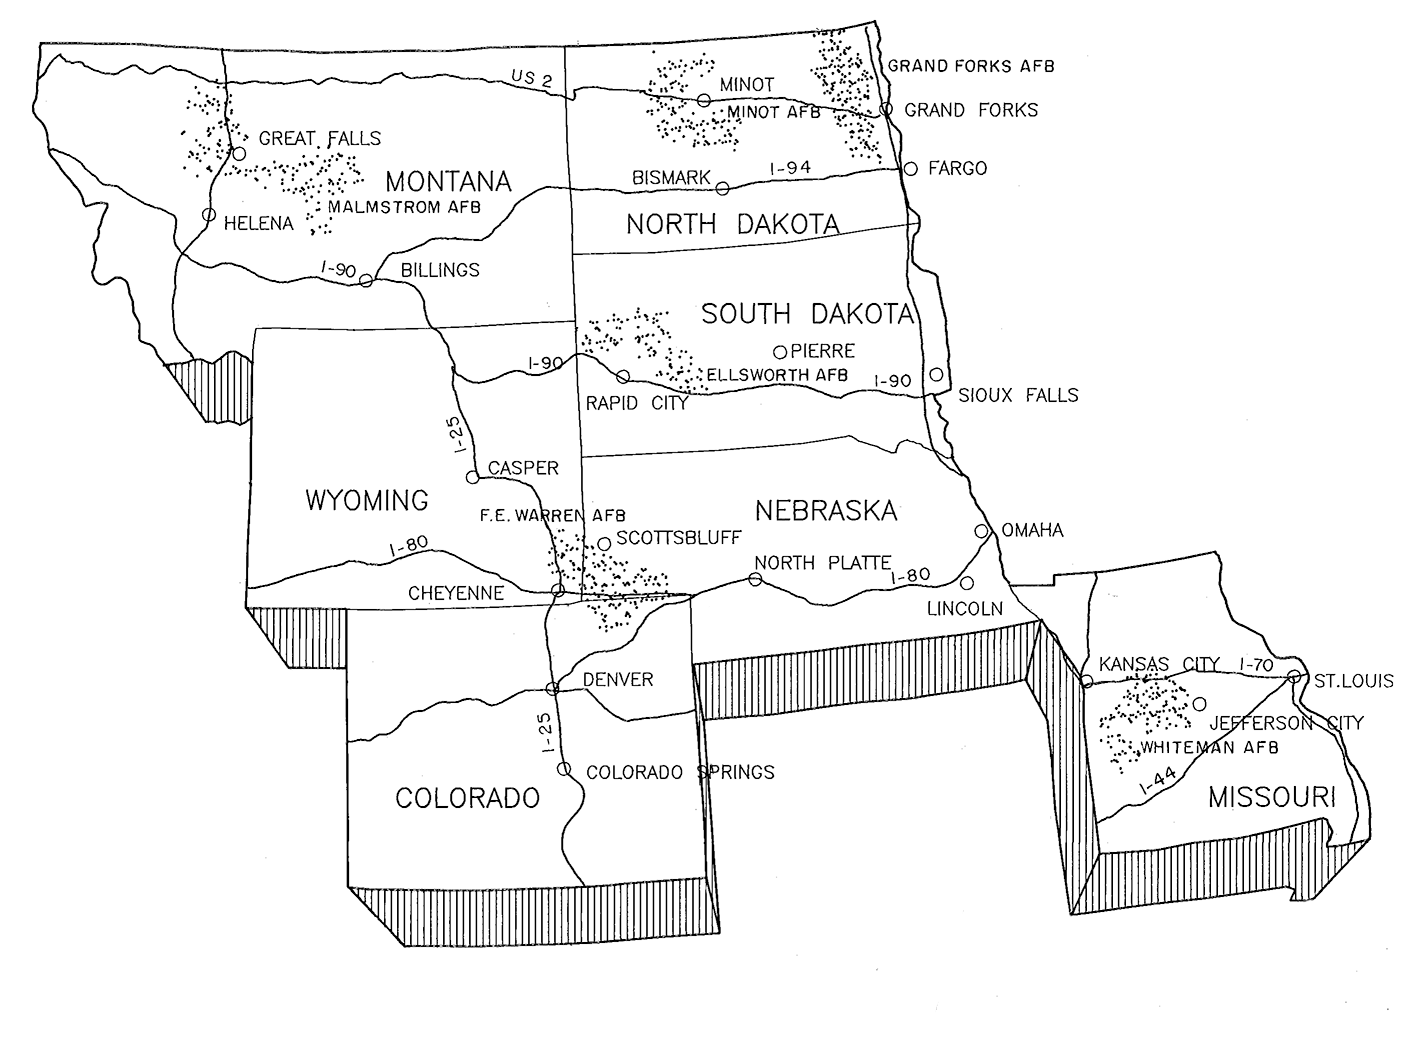 Black and white line drawing of the upper midwest states showing the location of the six missile fields